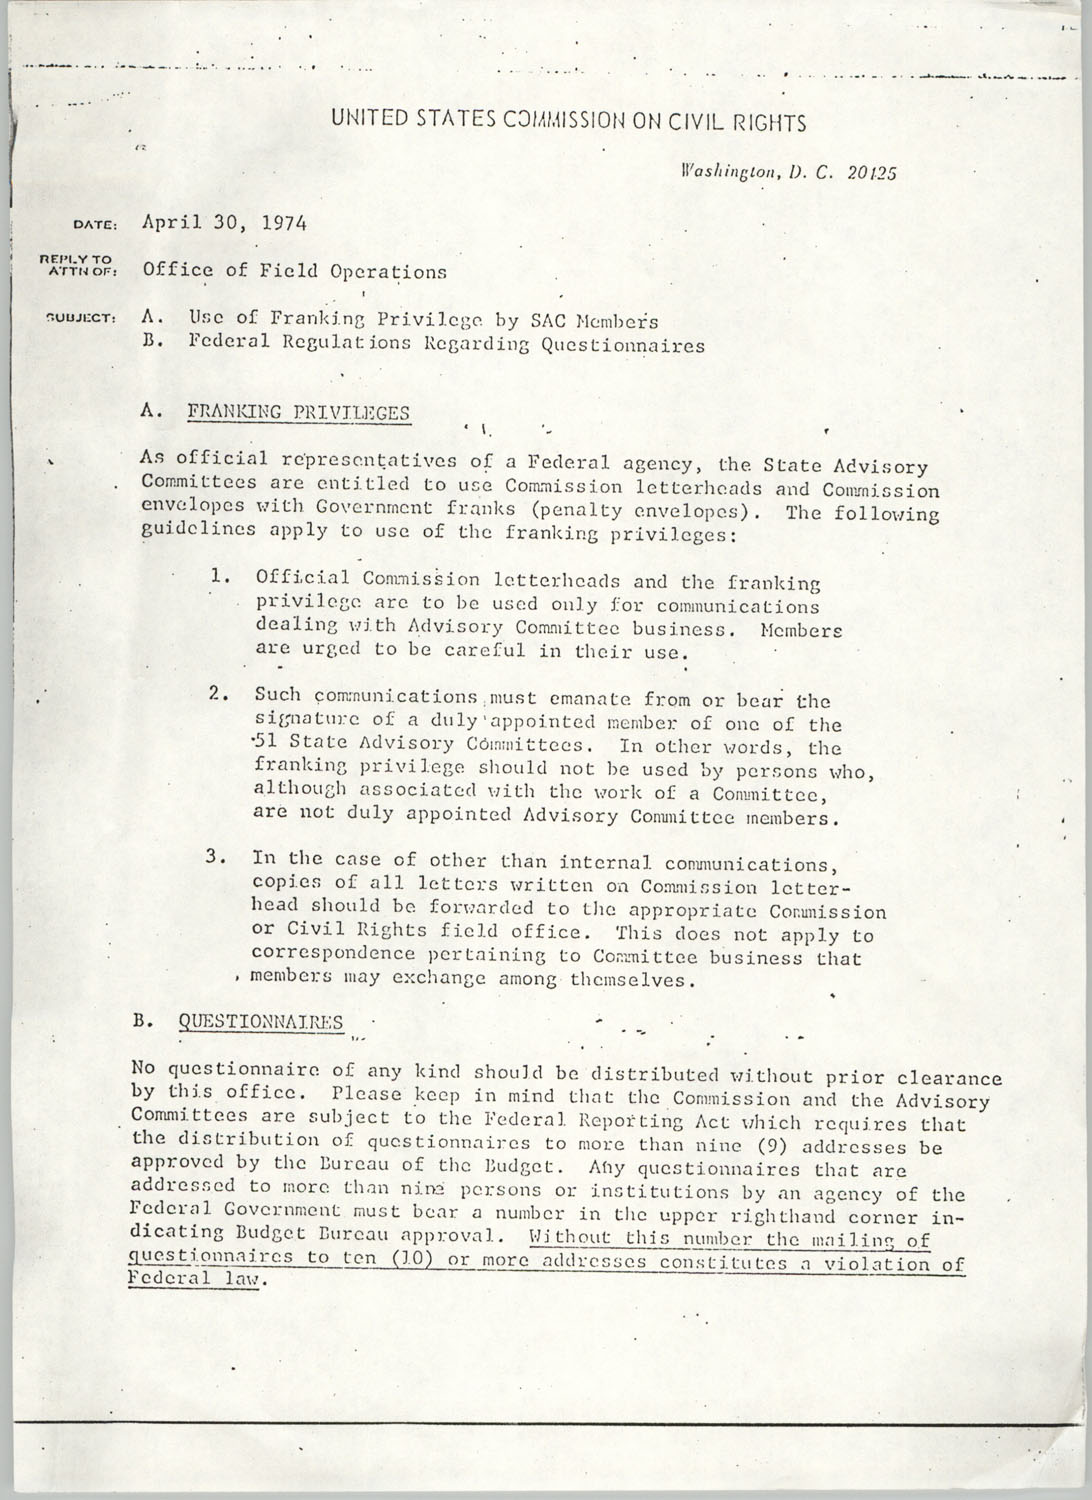 Memorandum, United States Commission on Civil Rights, April 30, 1974